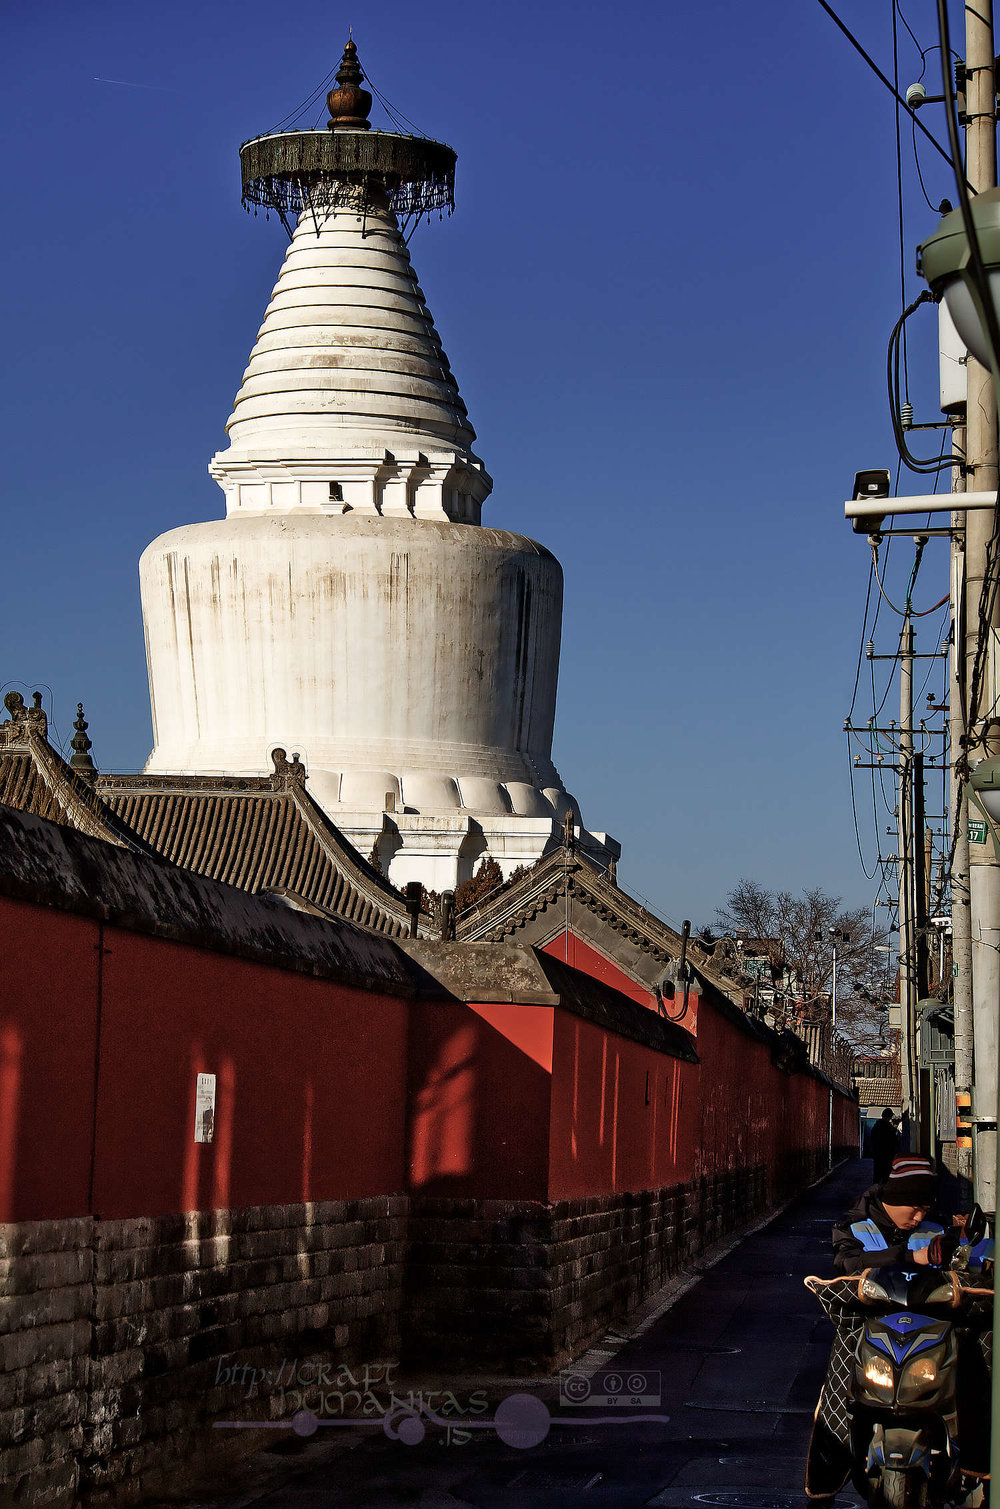 The so called White Pagoda Temple (technically not a pagoda, but a  stuppa ). Peking, January 2019